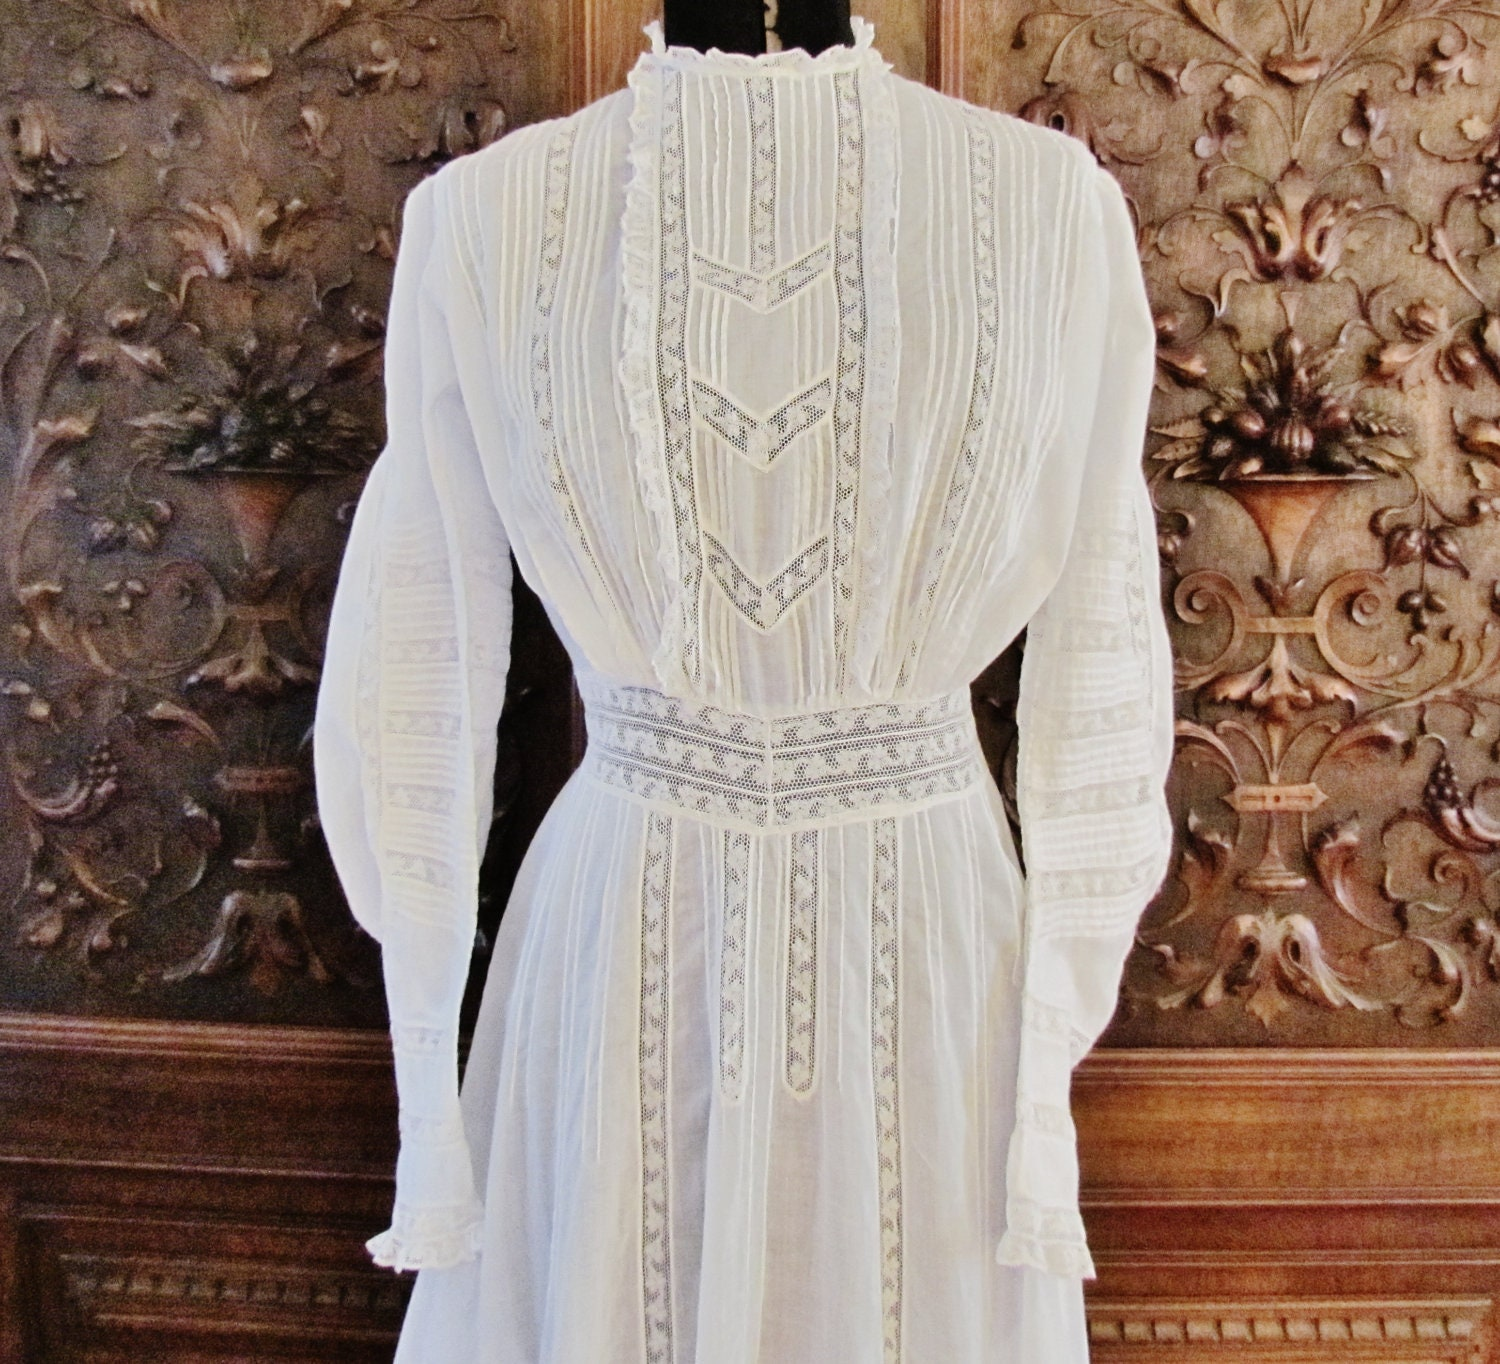 Vintage White Lawn Dress Early 1900's Dress With Lace